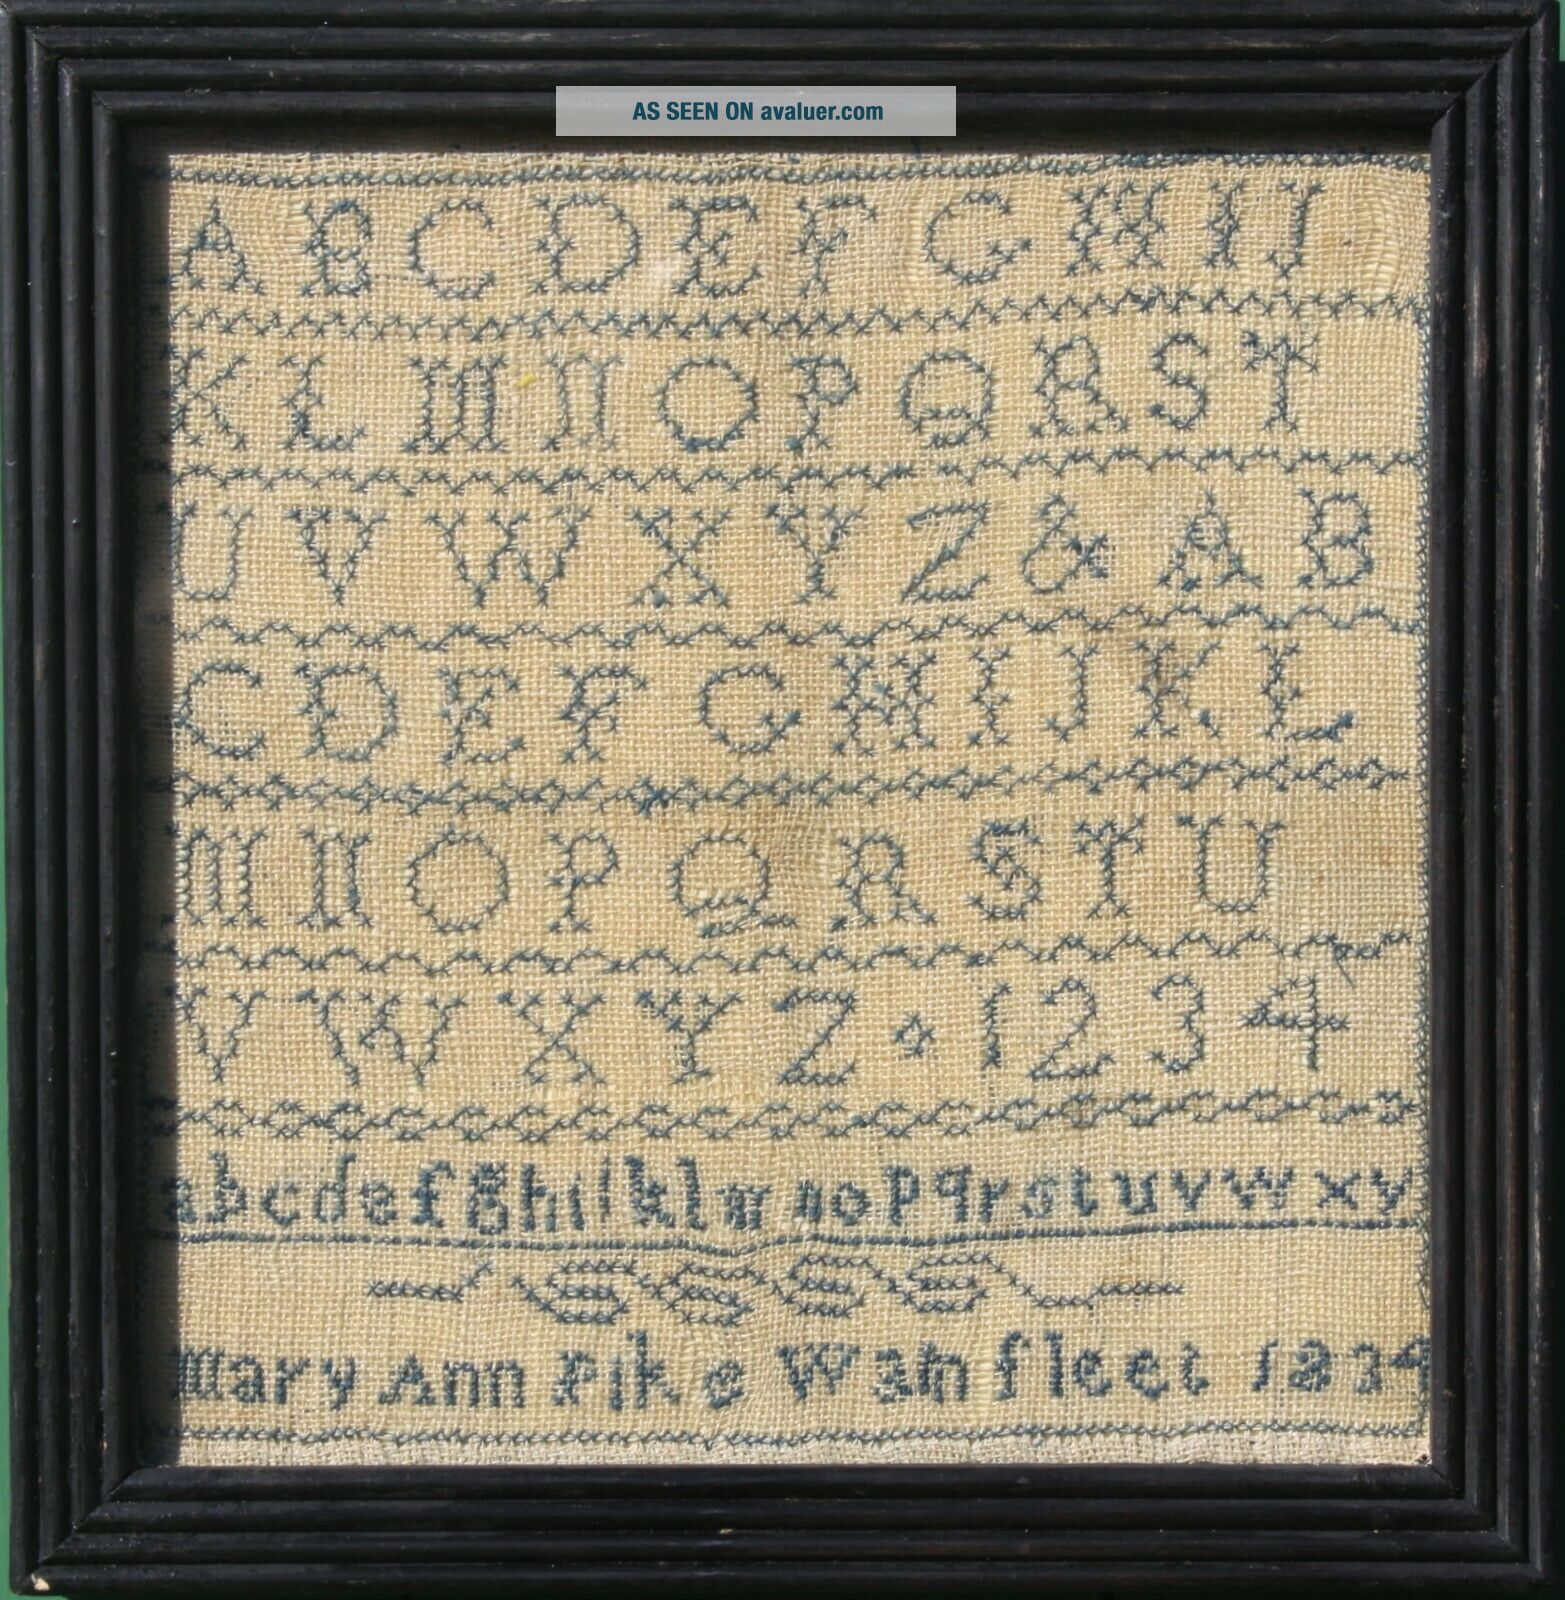 ANTIQUE NEEDLEWORK SAMPLER by MARY ANN PIKE WAINFLEET LINCOLNSHIRE 1834